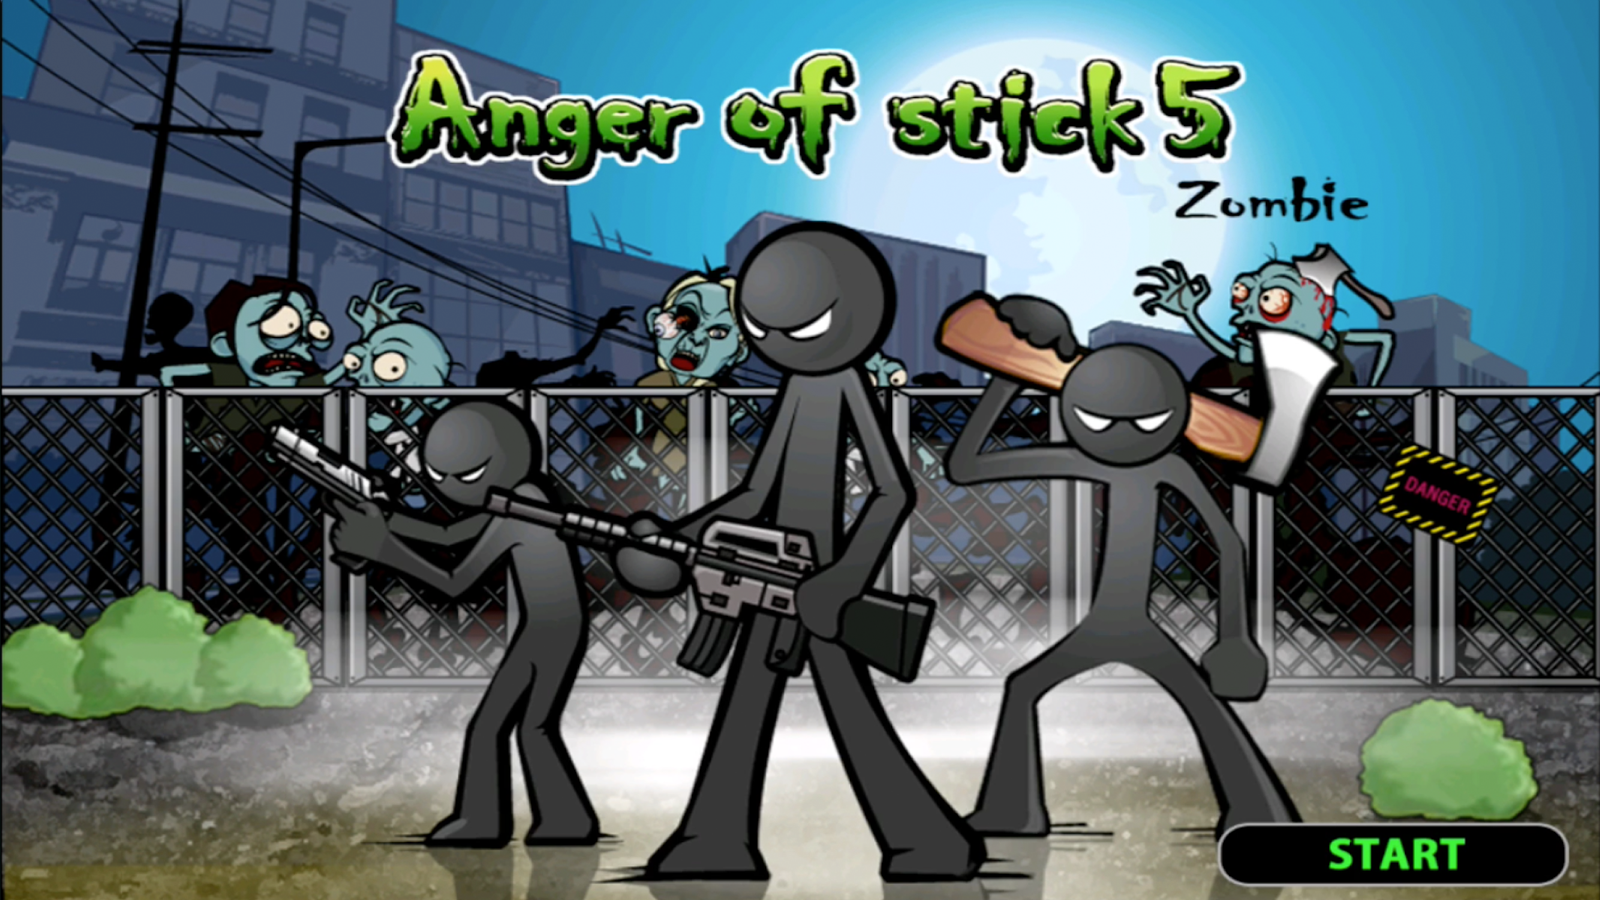 Anger of Stick 5 Screenshot 12